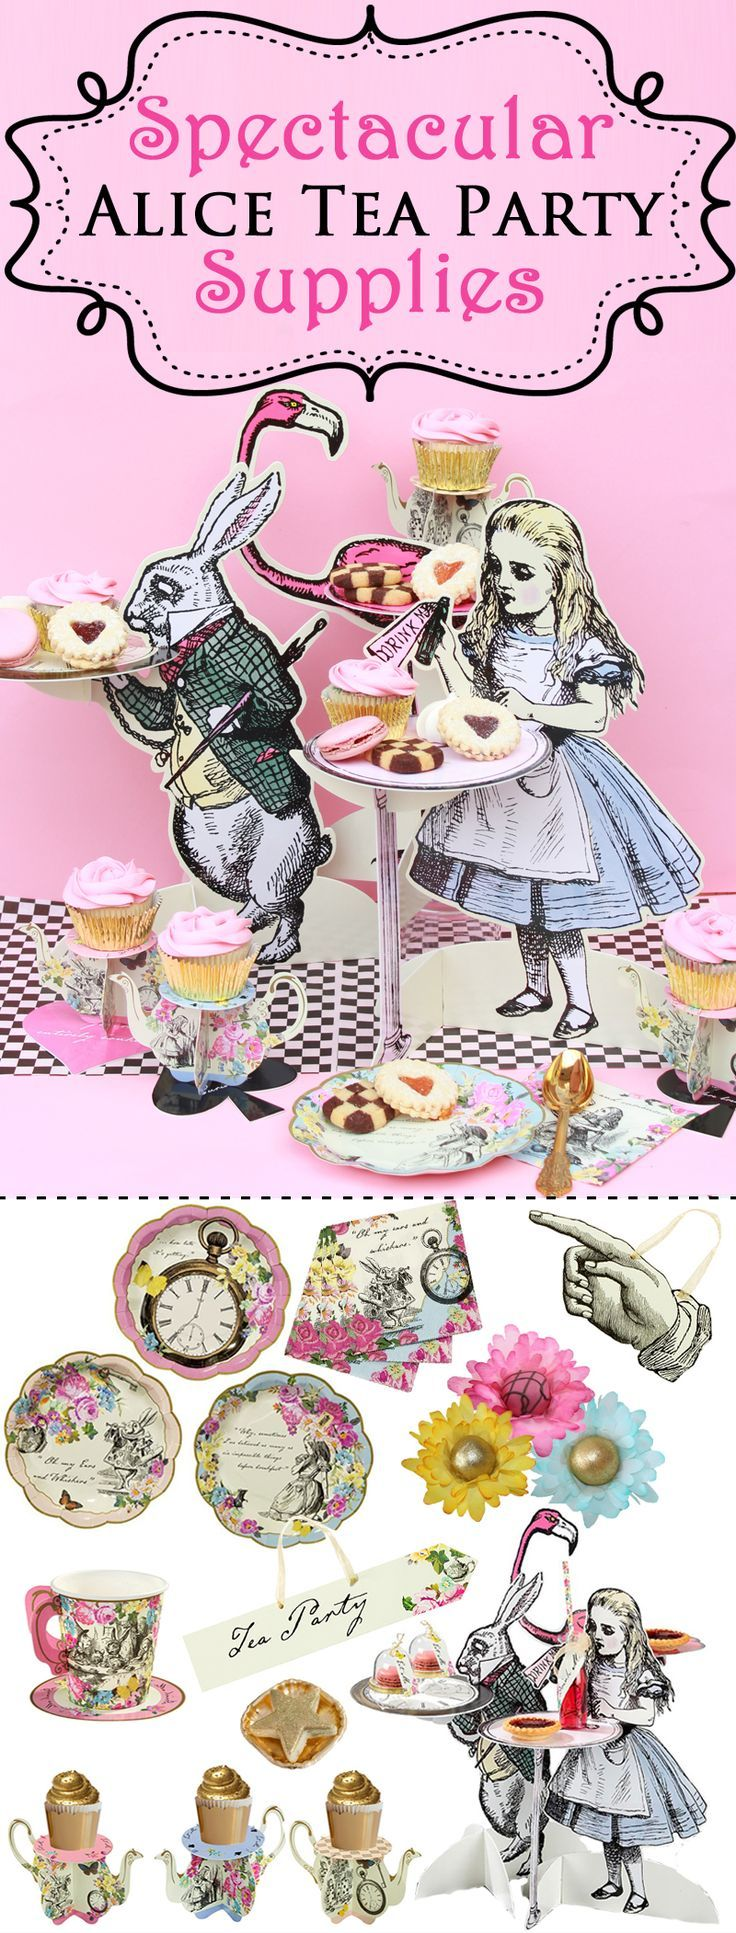 You will immerse yourself in the wonderful world of Alice in Wonderland with our Mad Hatter Tea Party Decorations are perfect for you Alice in Wonderland Tea Party!!!